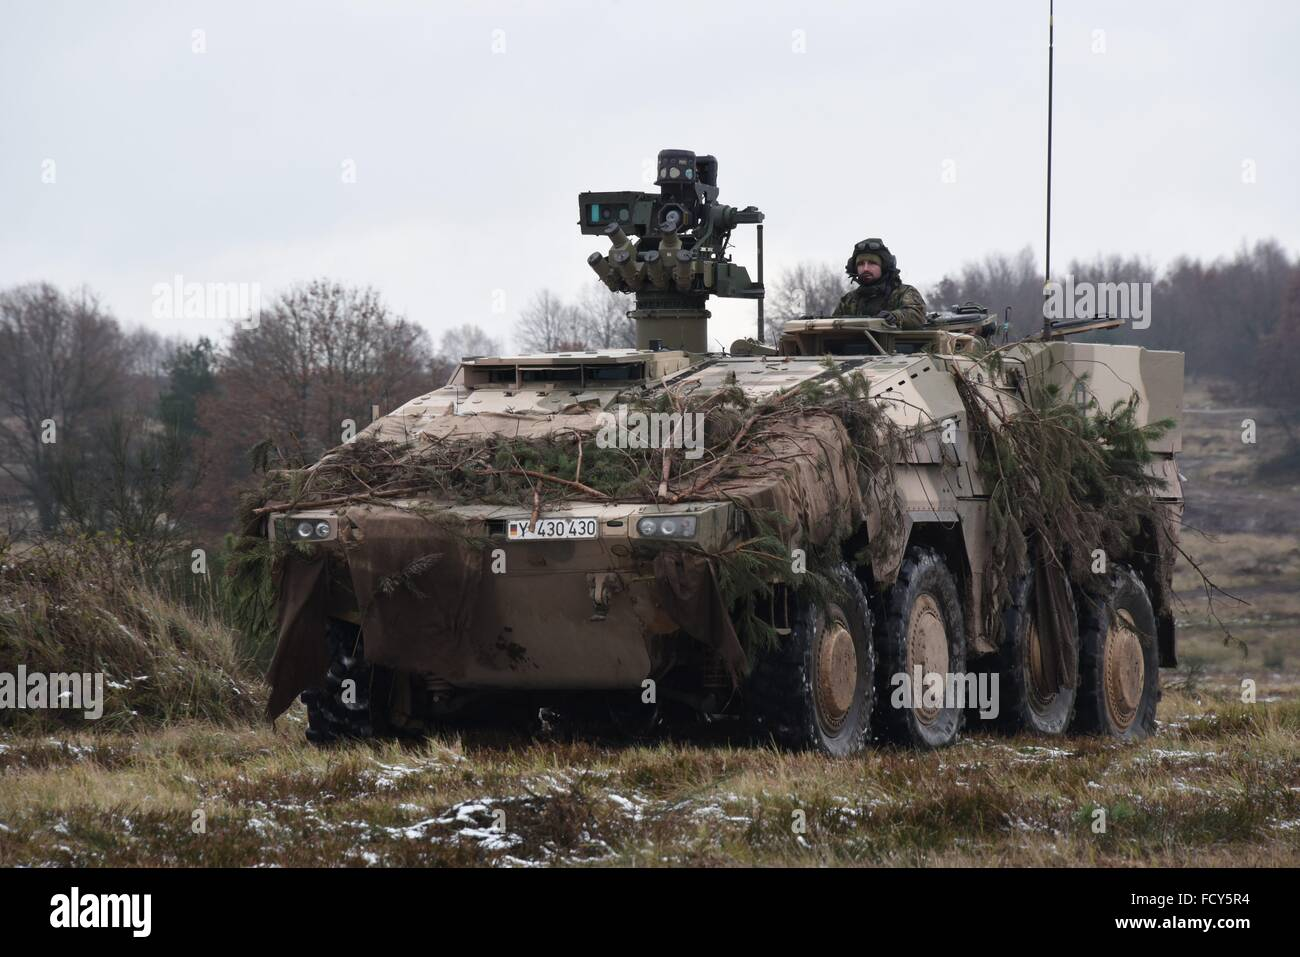 http://c8.alamy.com/comp/FCY5R4/gtk-boxer-a1-armored-personnel-carrier-of-3rd-company-1st-infantry-FCY5R4.jpg